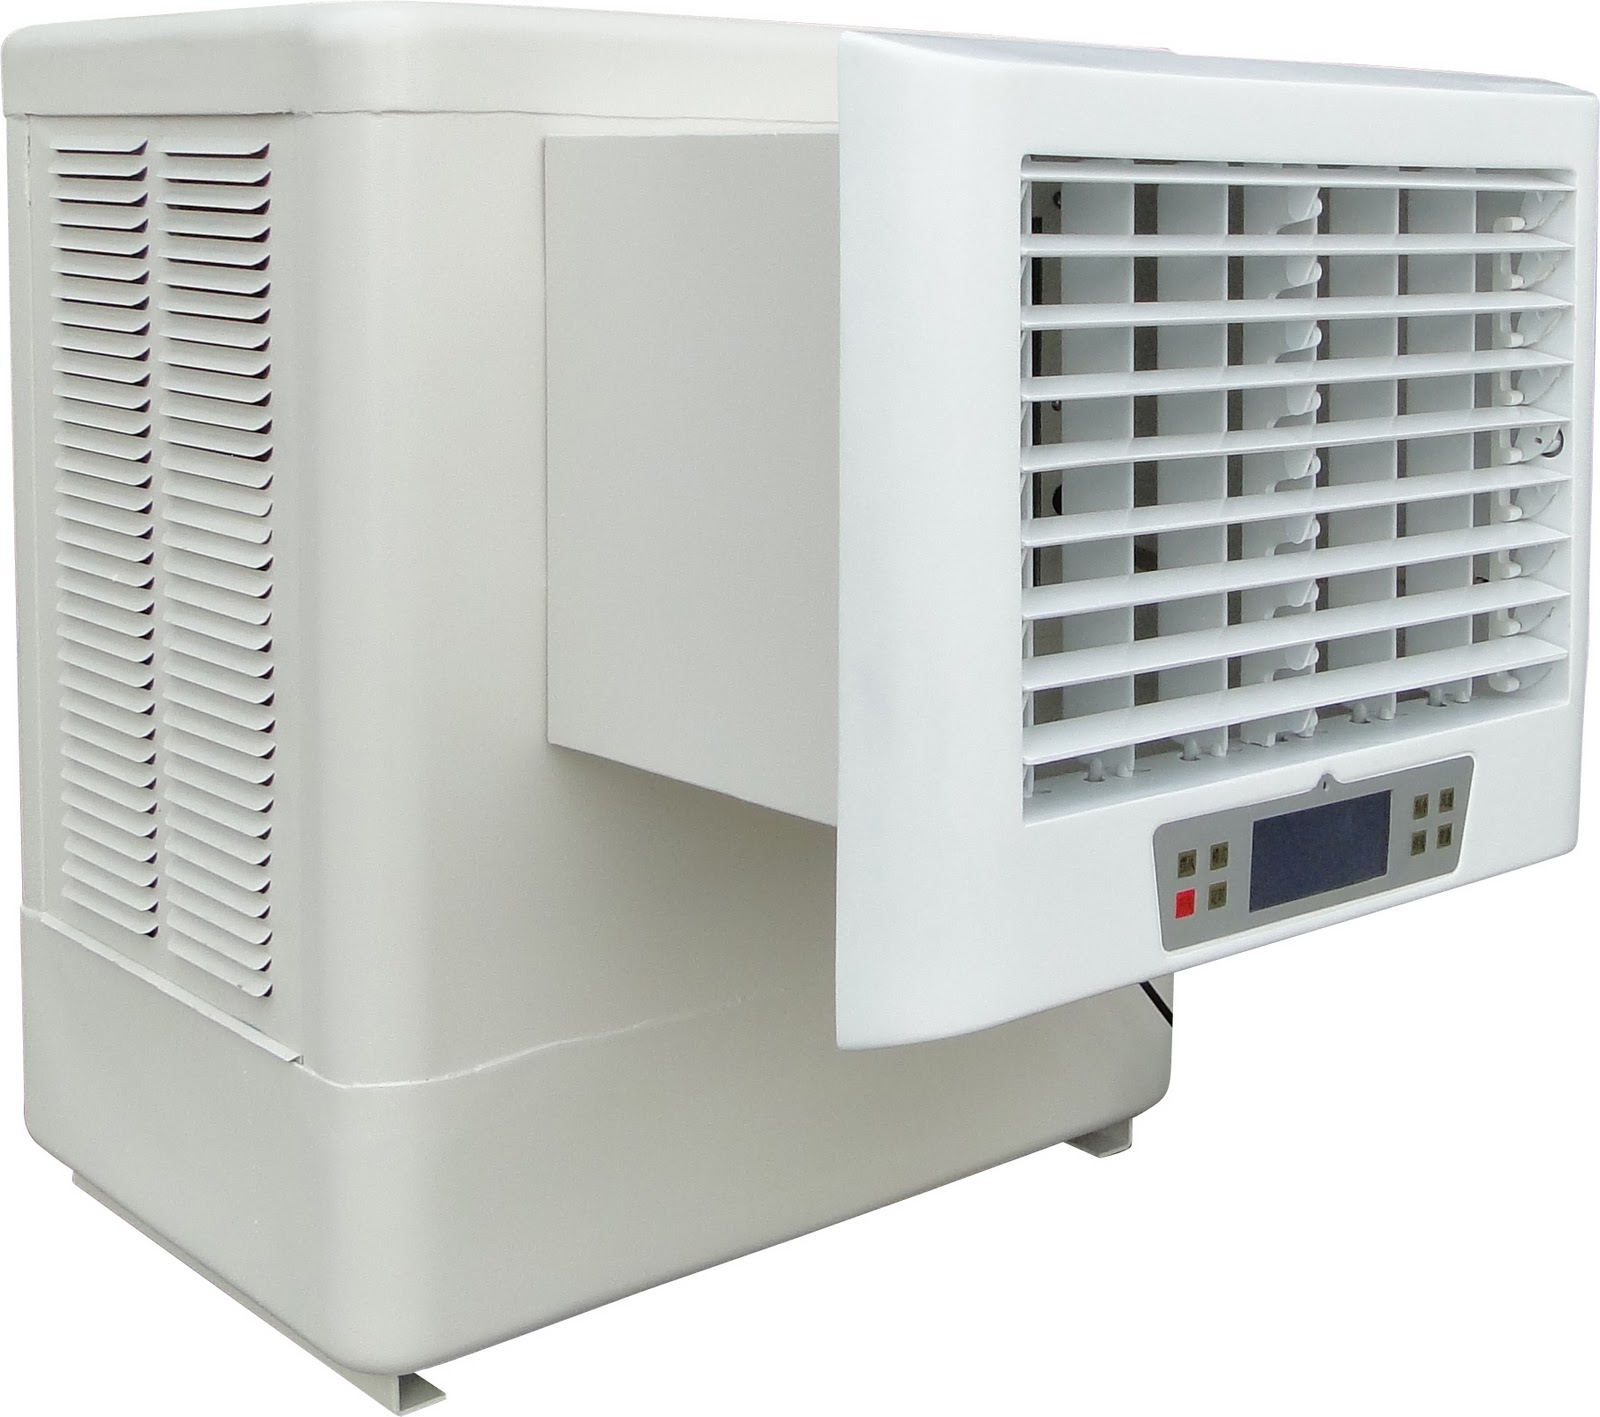 Window Air Cooler : Aolan evaporative air cooler new window